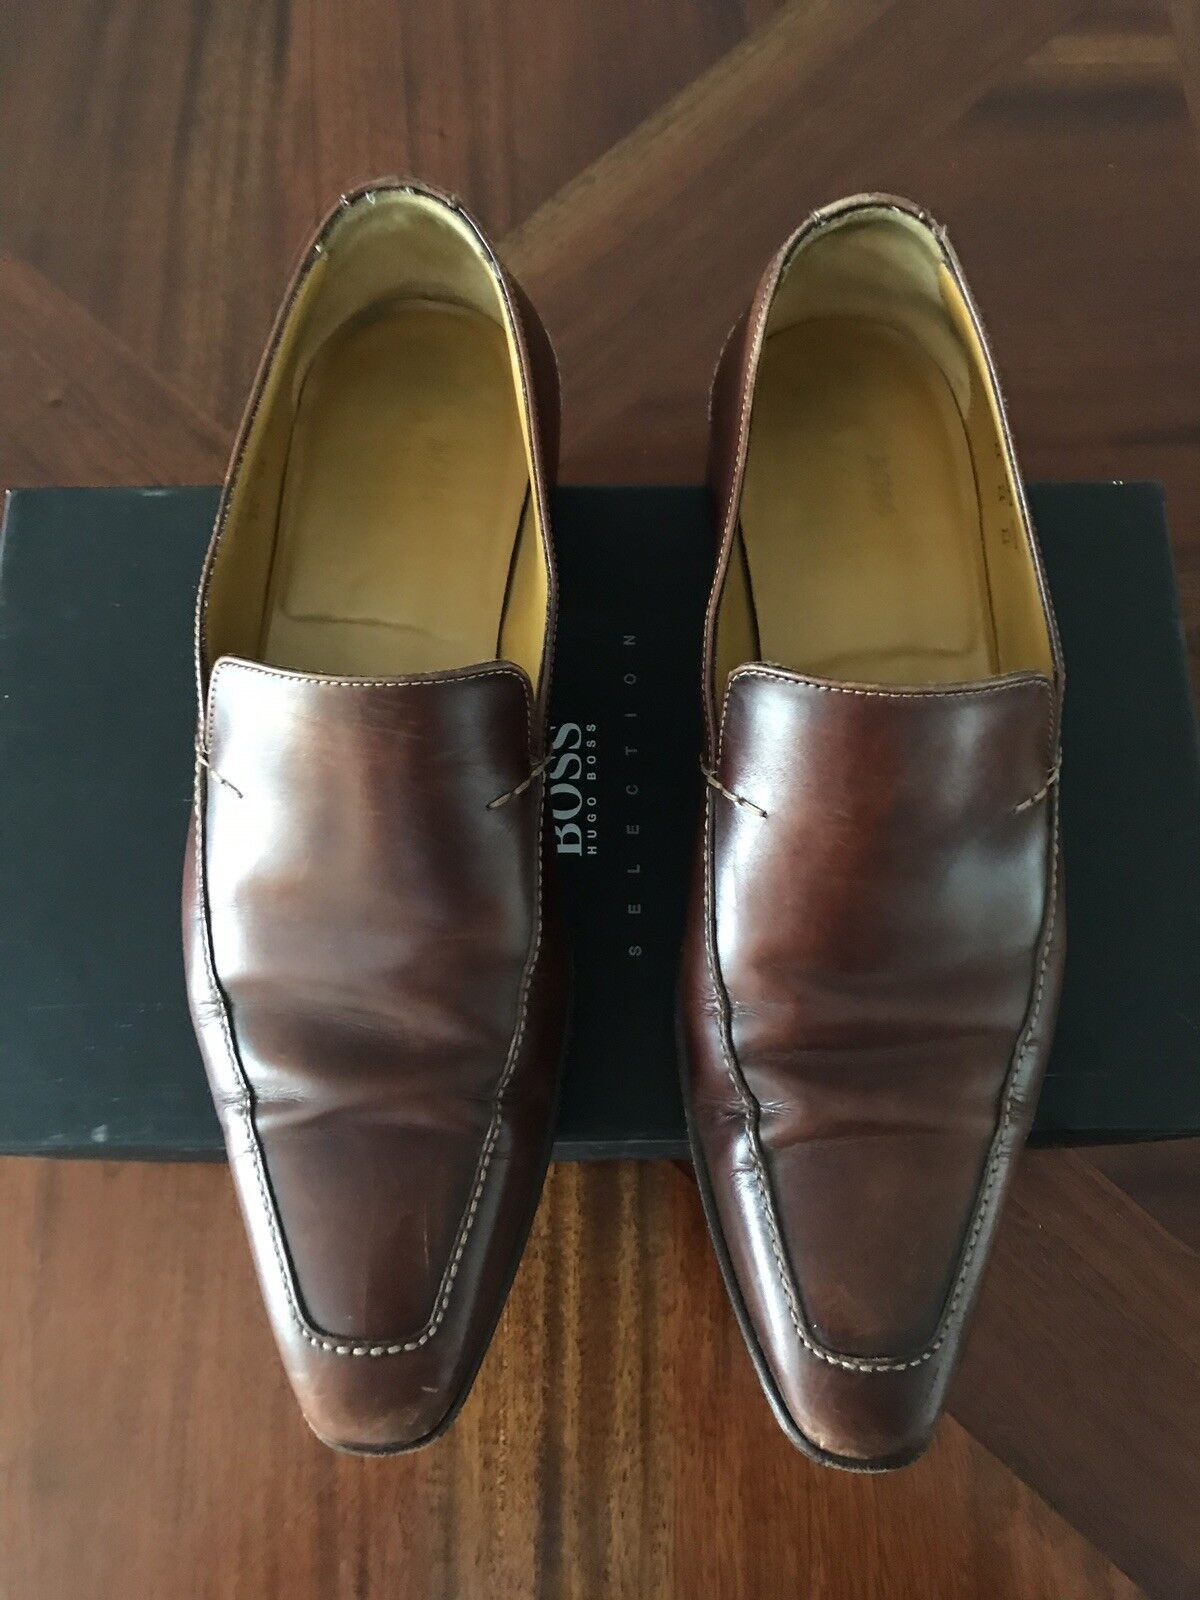 380 Hugo Boss Selection Brown Leather Loafers Slip-on shoes US 9 UK 8 EU 42